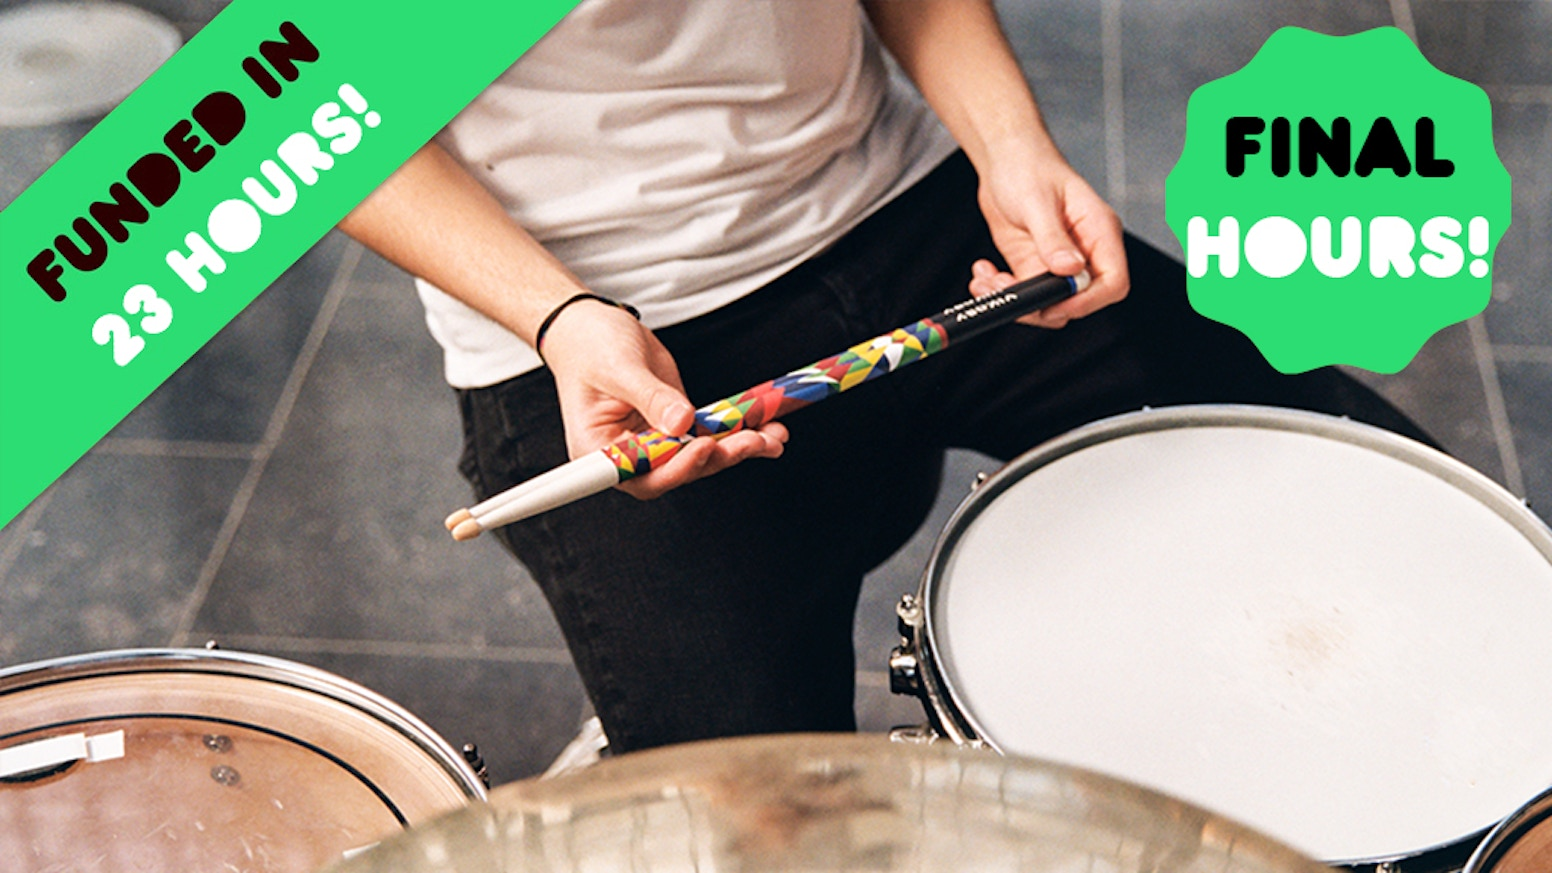 Simply the most resistant and the best badass looking drumsticks you ever played with.